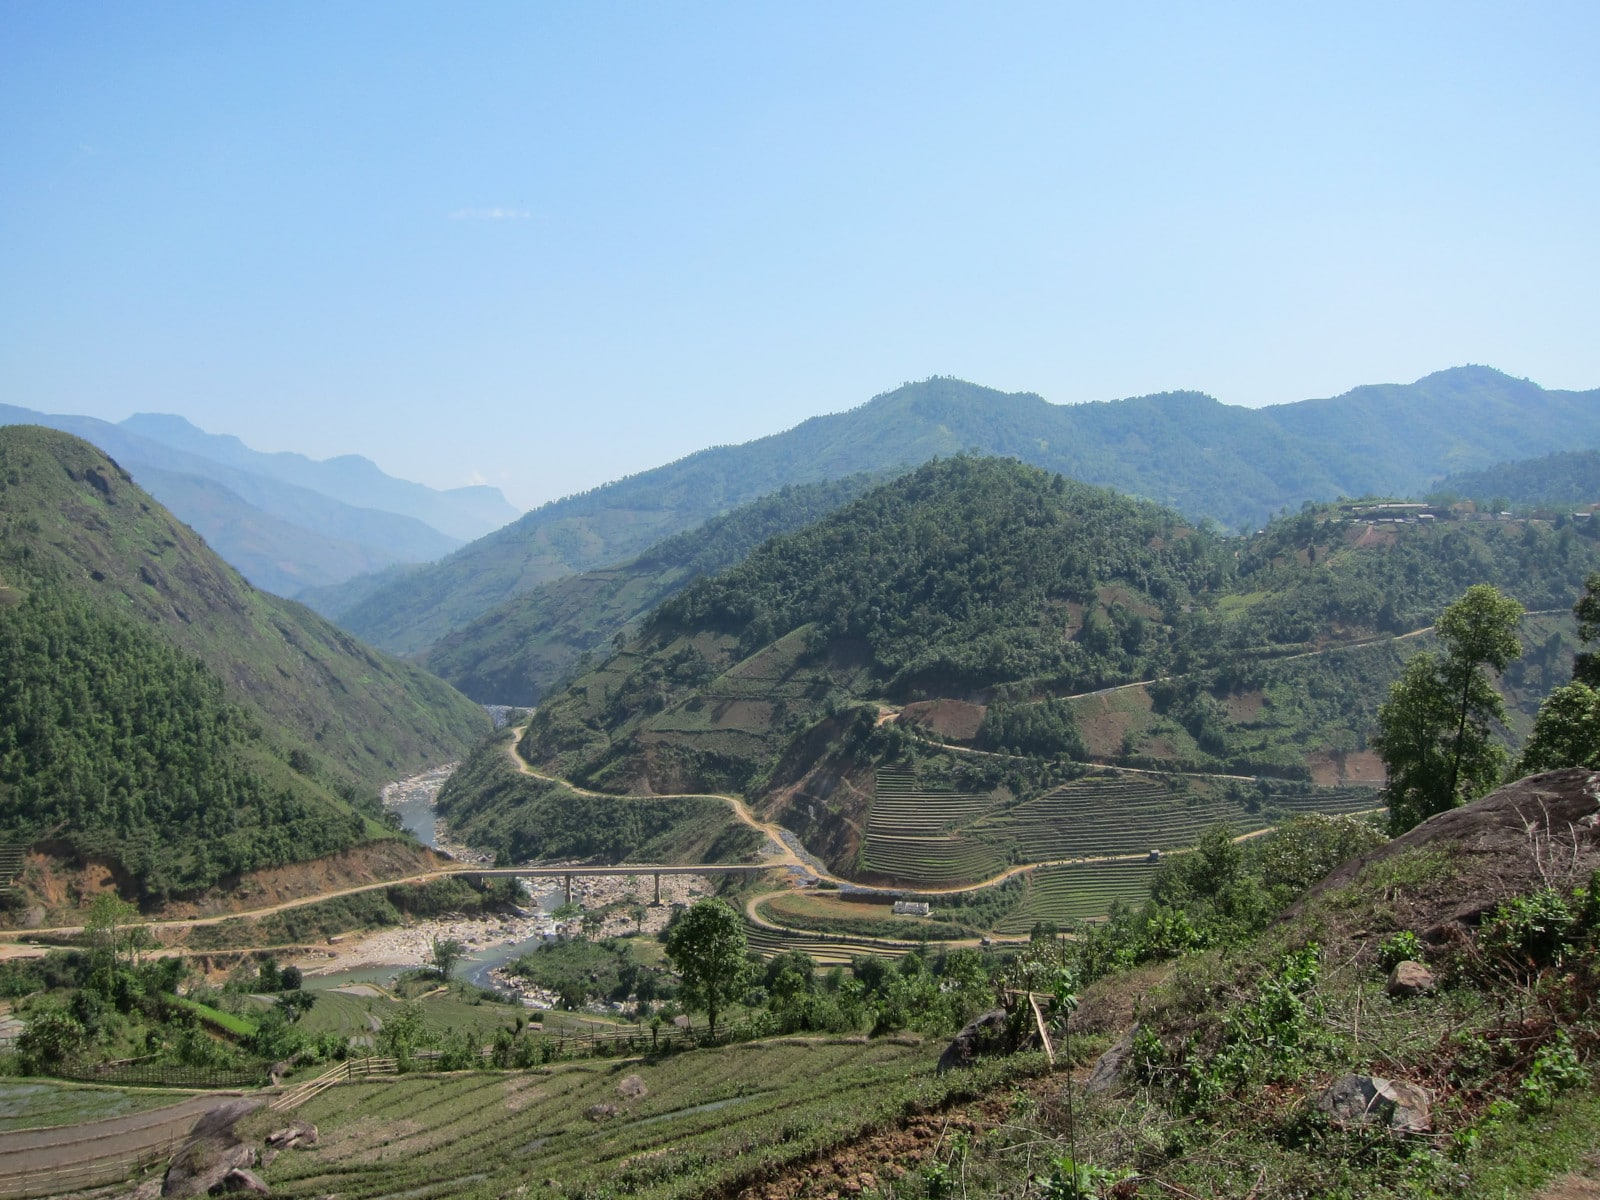 Image of the Hoang Lien Son Range in Northern Vietnam